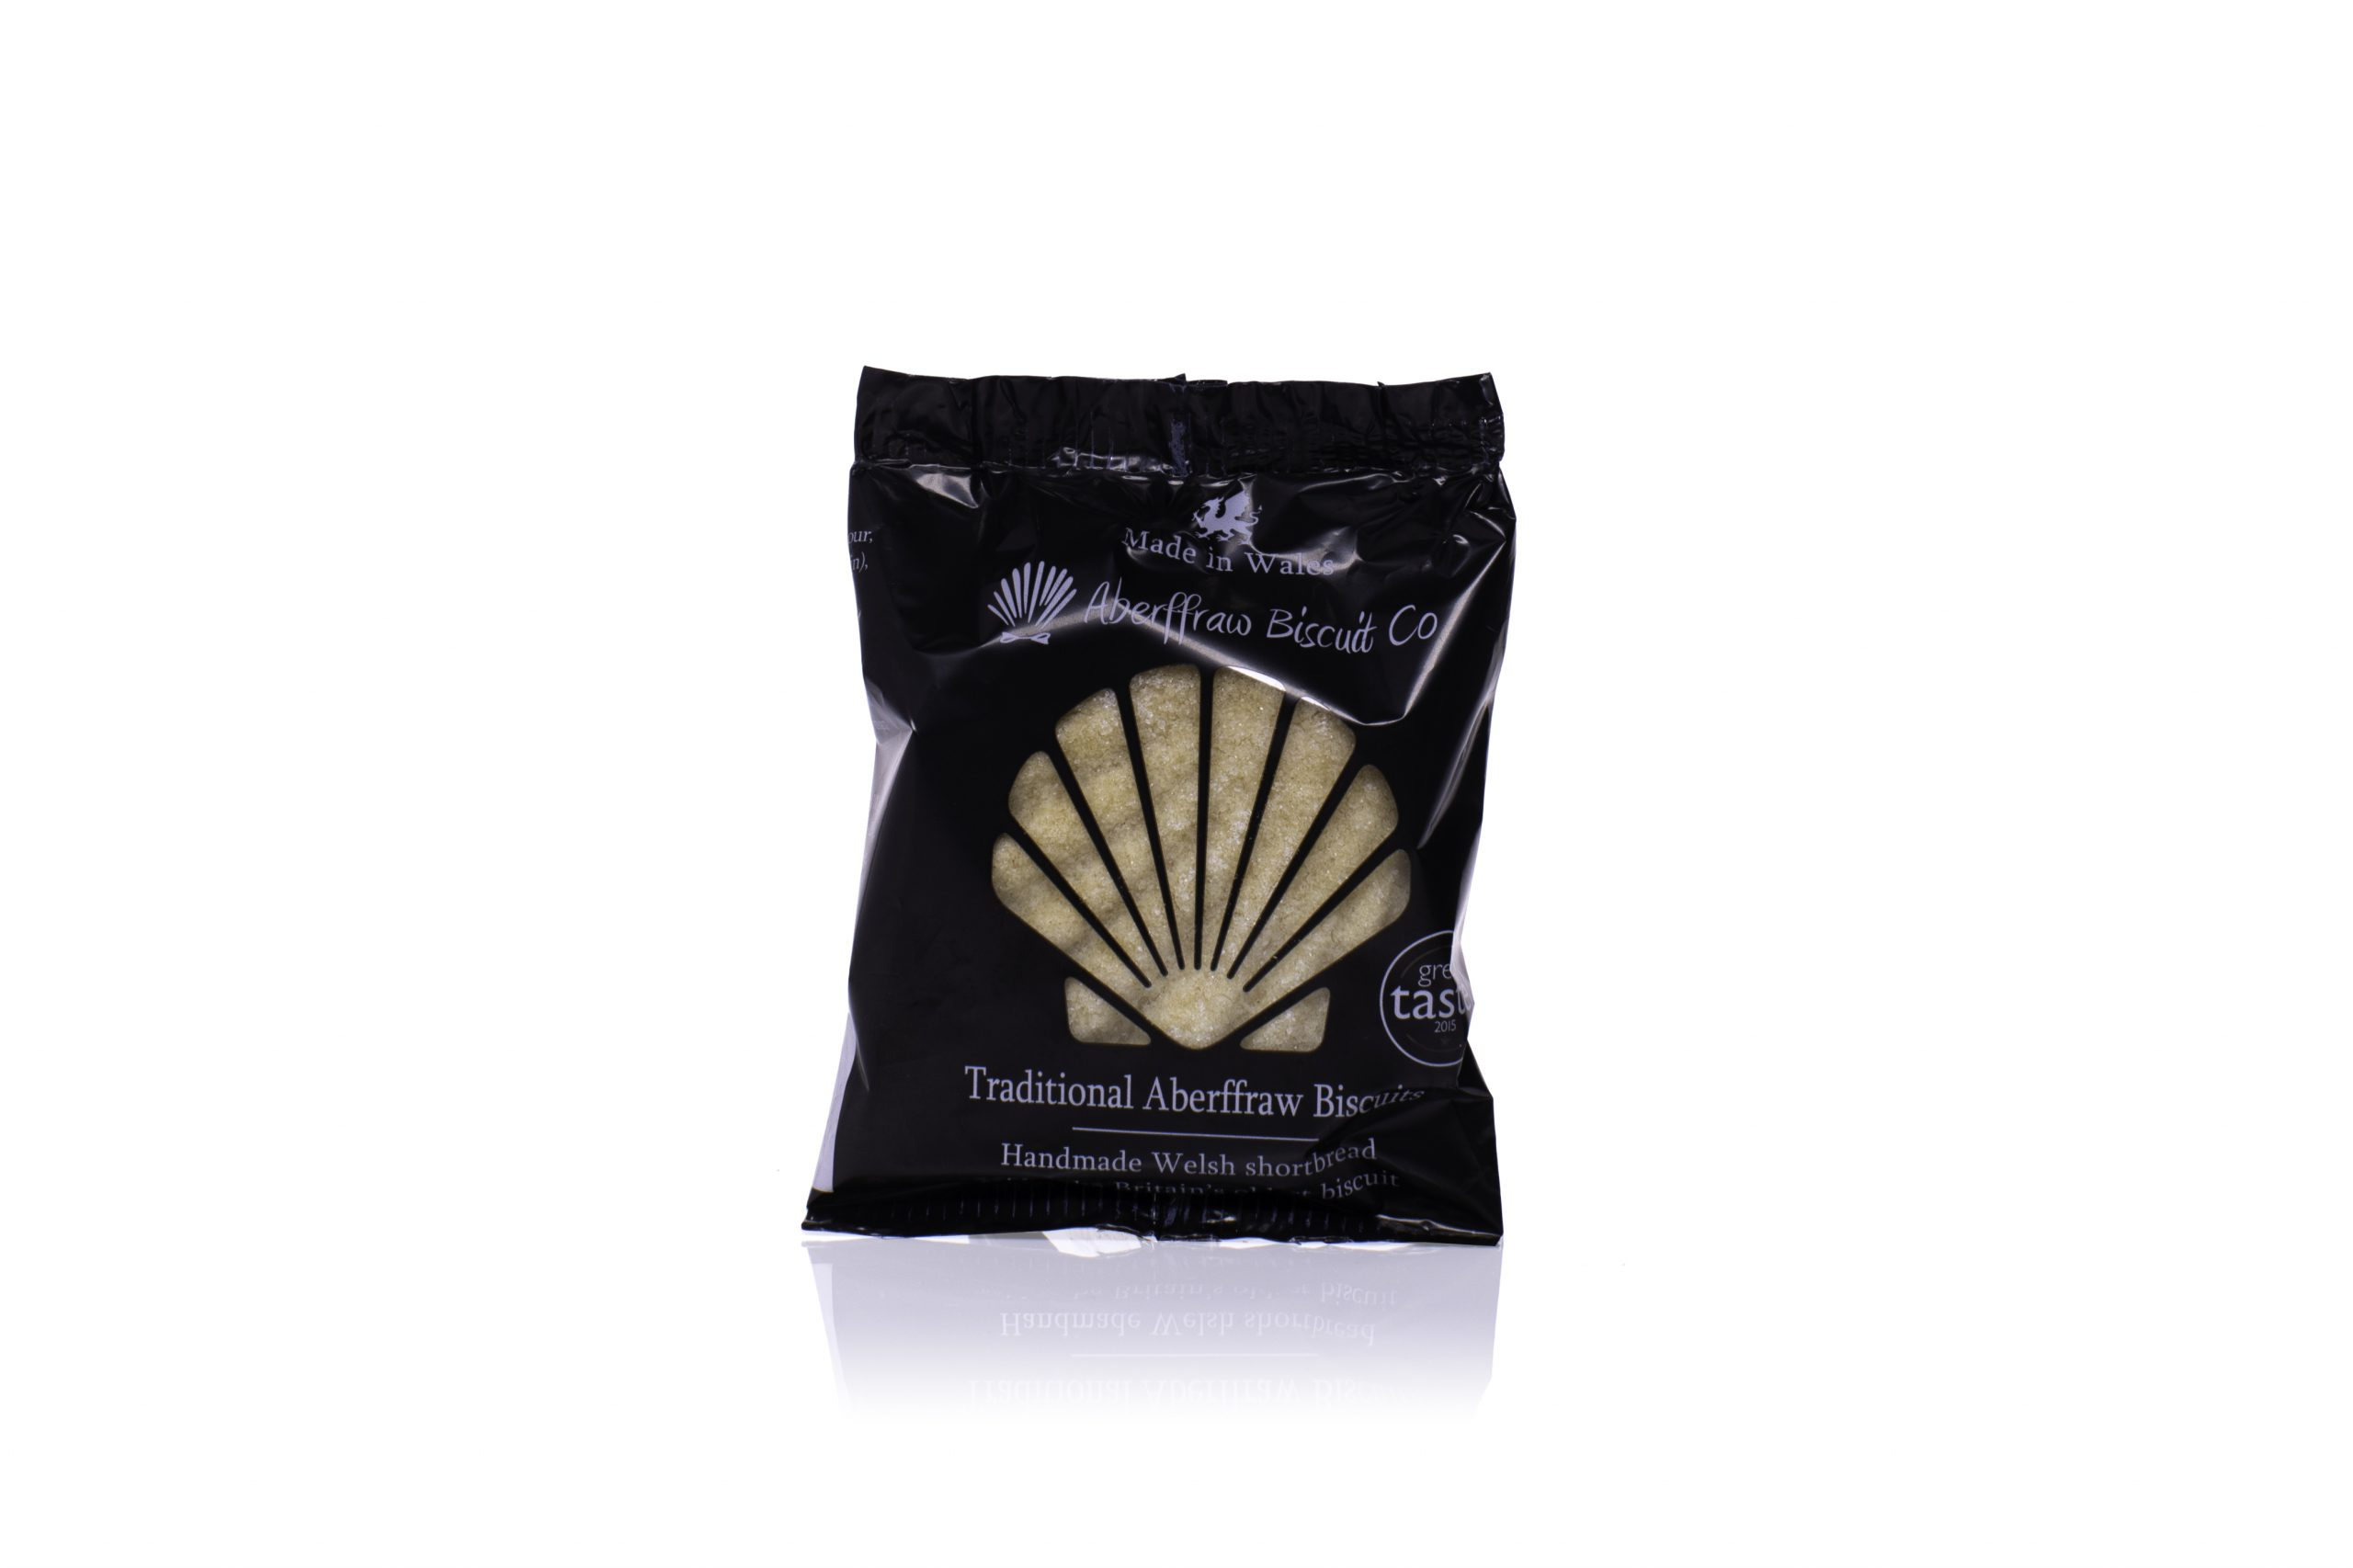 ABCD01 - Traditional Aberffraw Biscuits 42g Twin-pack